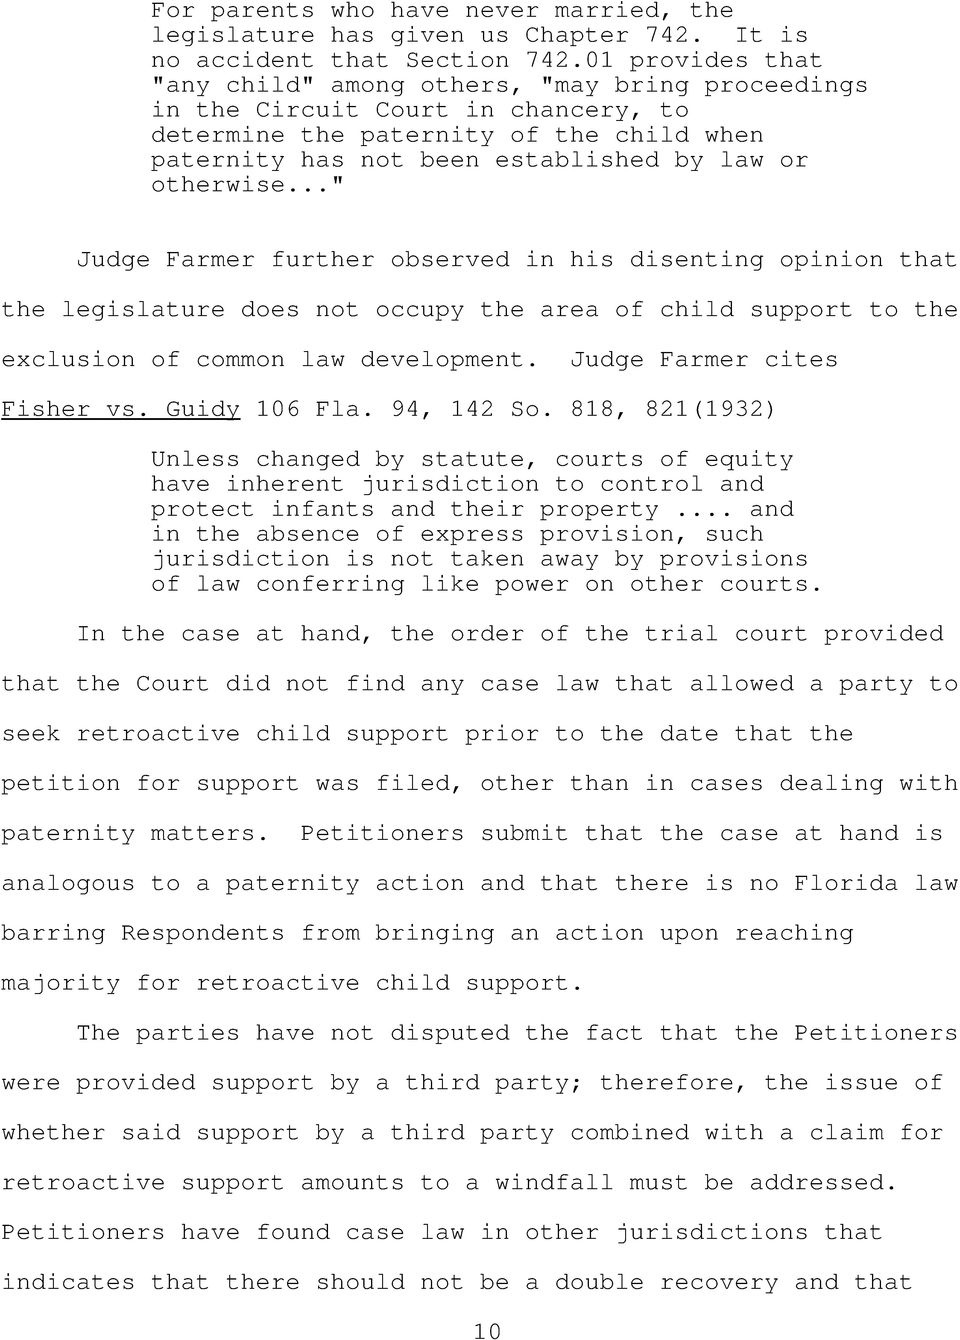 ".."" Judge Farmer further observed in his disenting opinion that the legislature does not occupy the area of child support to the exclusion of common law development. Judge Farmer cites Fisher vs."